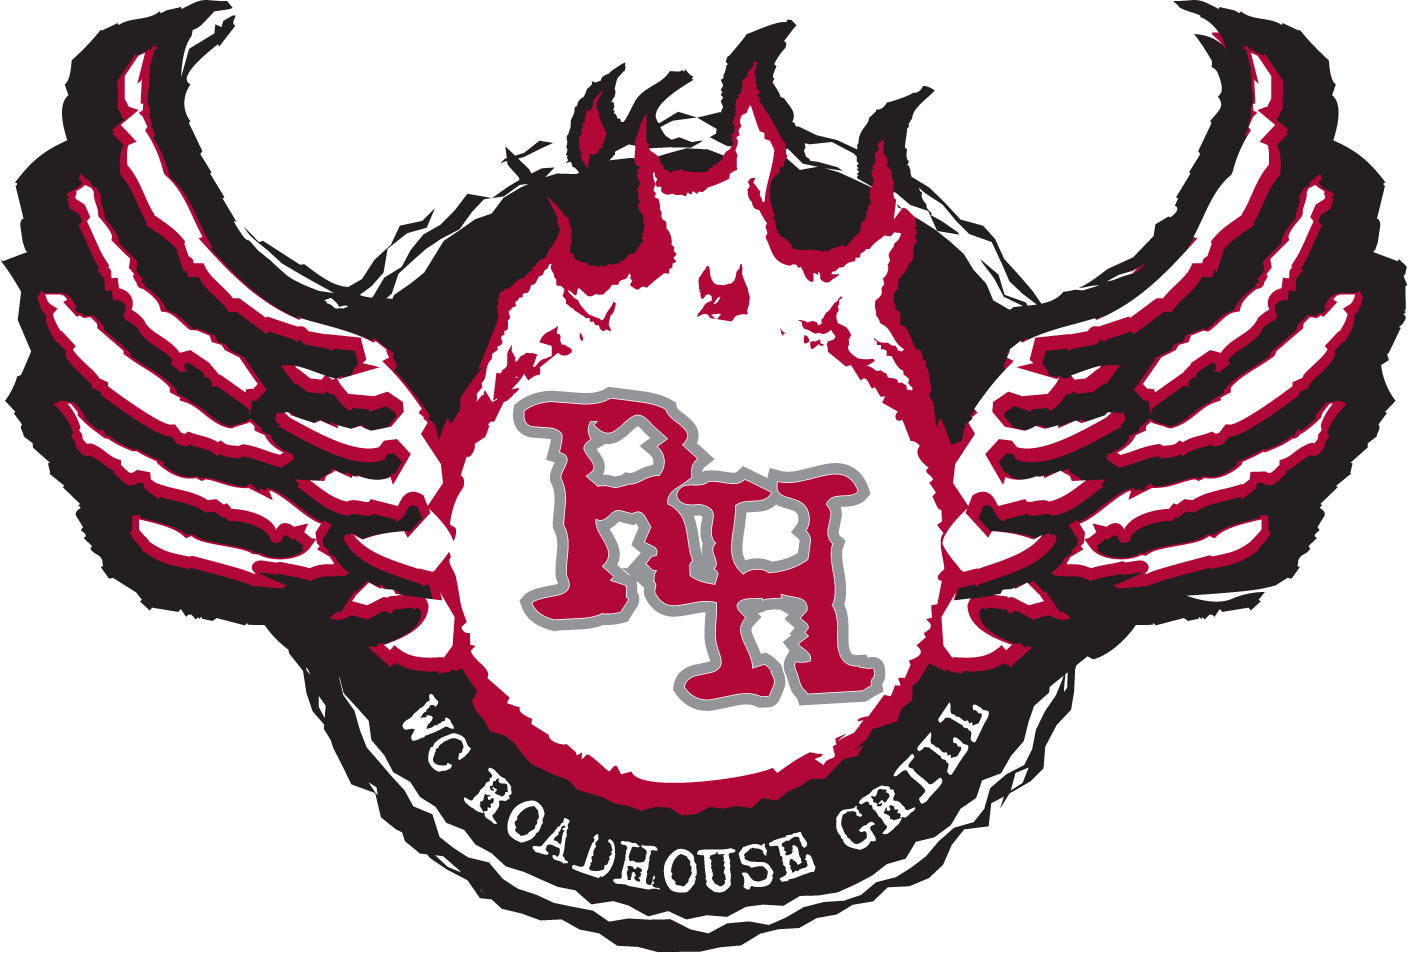 Roadhouse Grill Logo